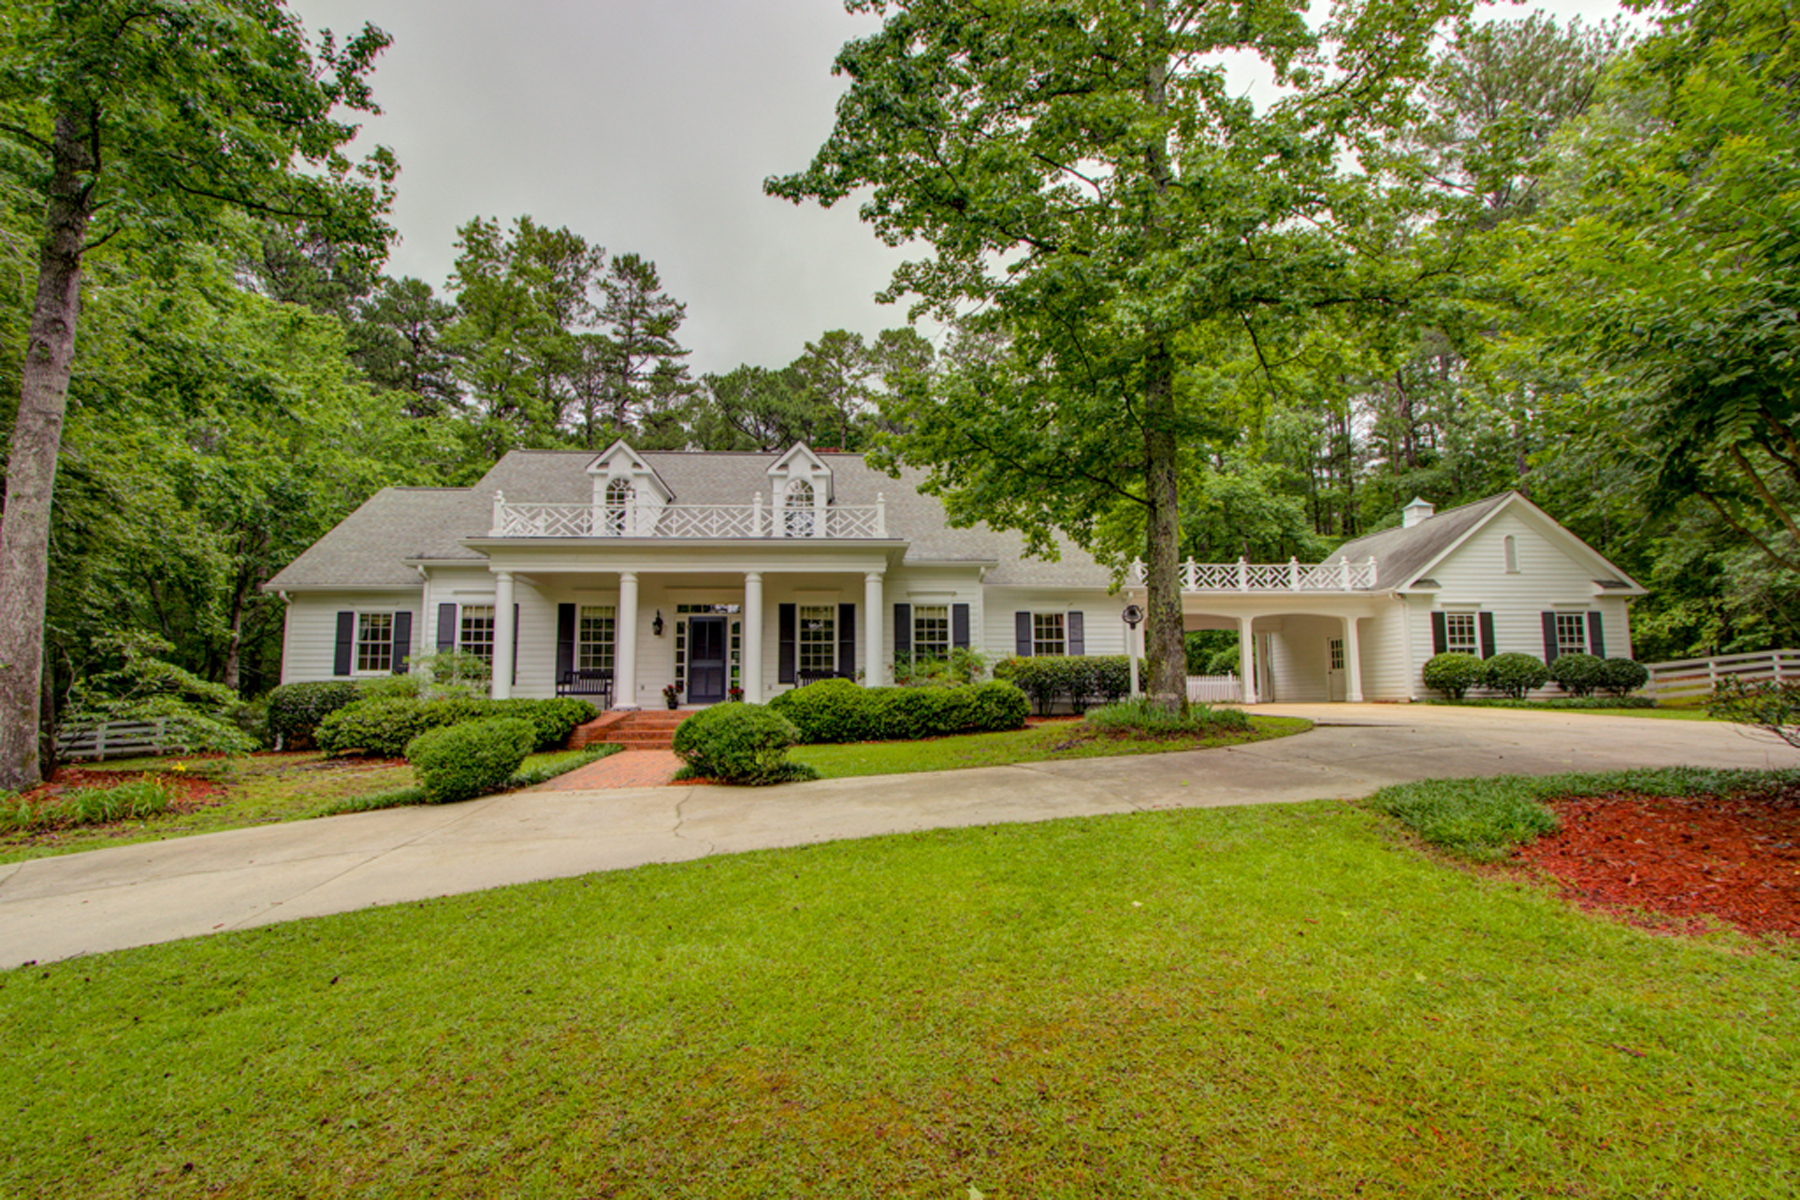 Single Family Home for Active at Classic Southern Home and Equestrian Farm 307 Happy Valley Circle Newnan, Georgia 30263 United States